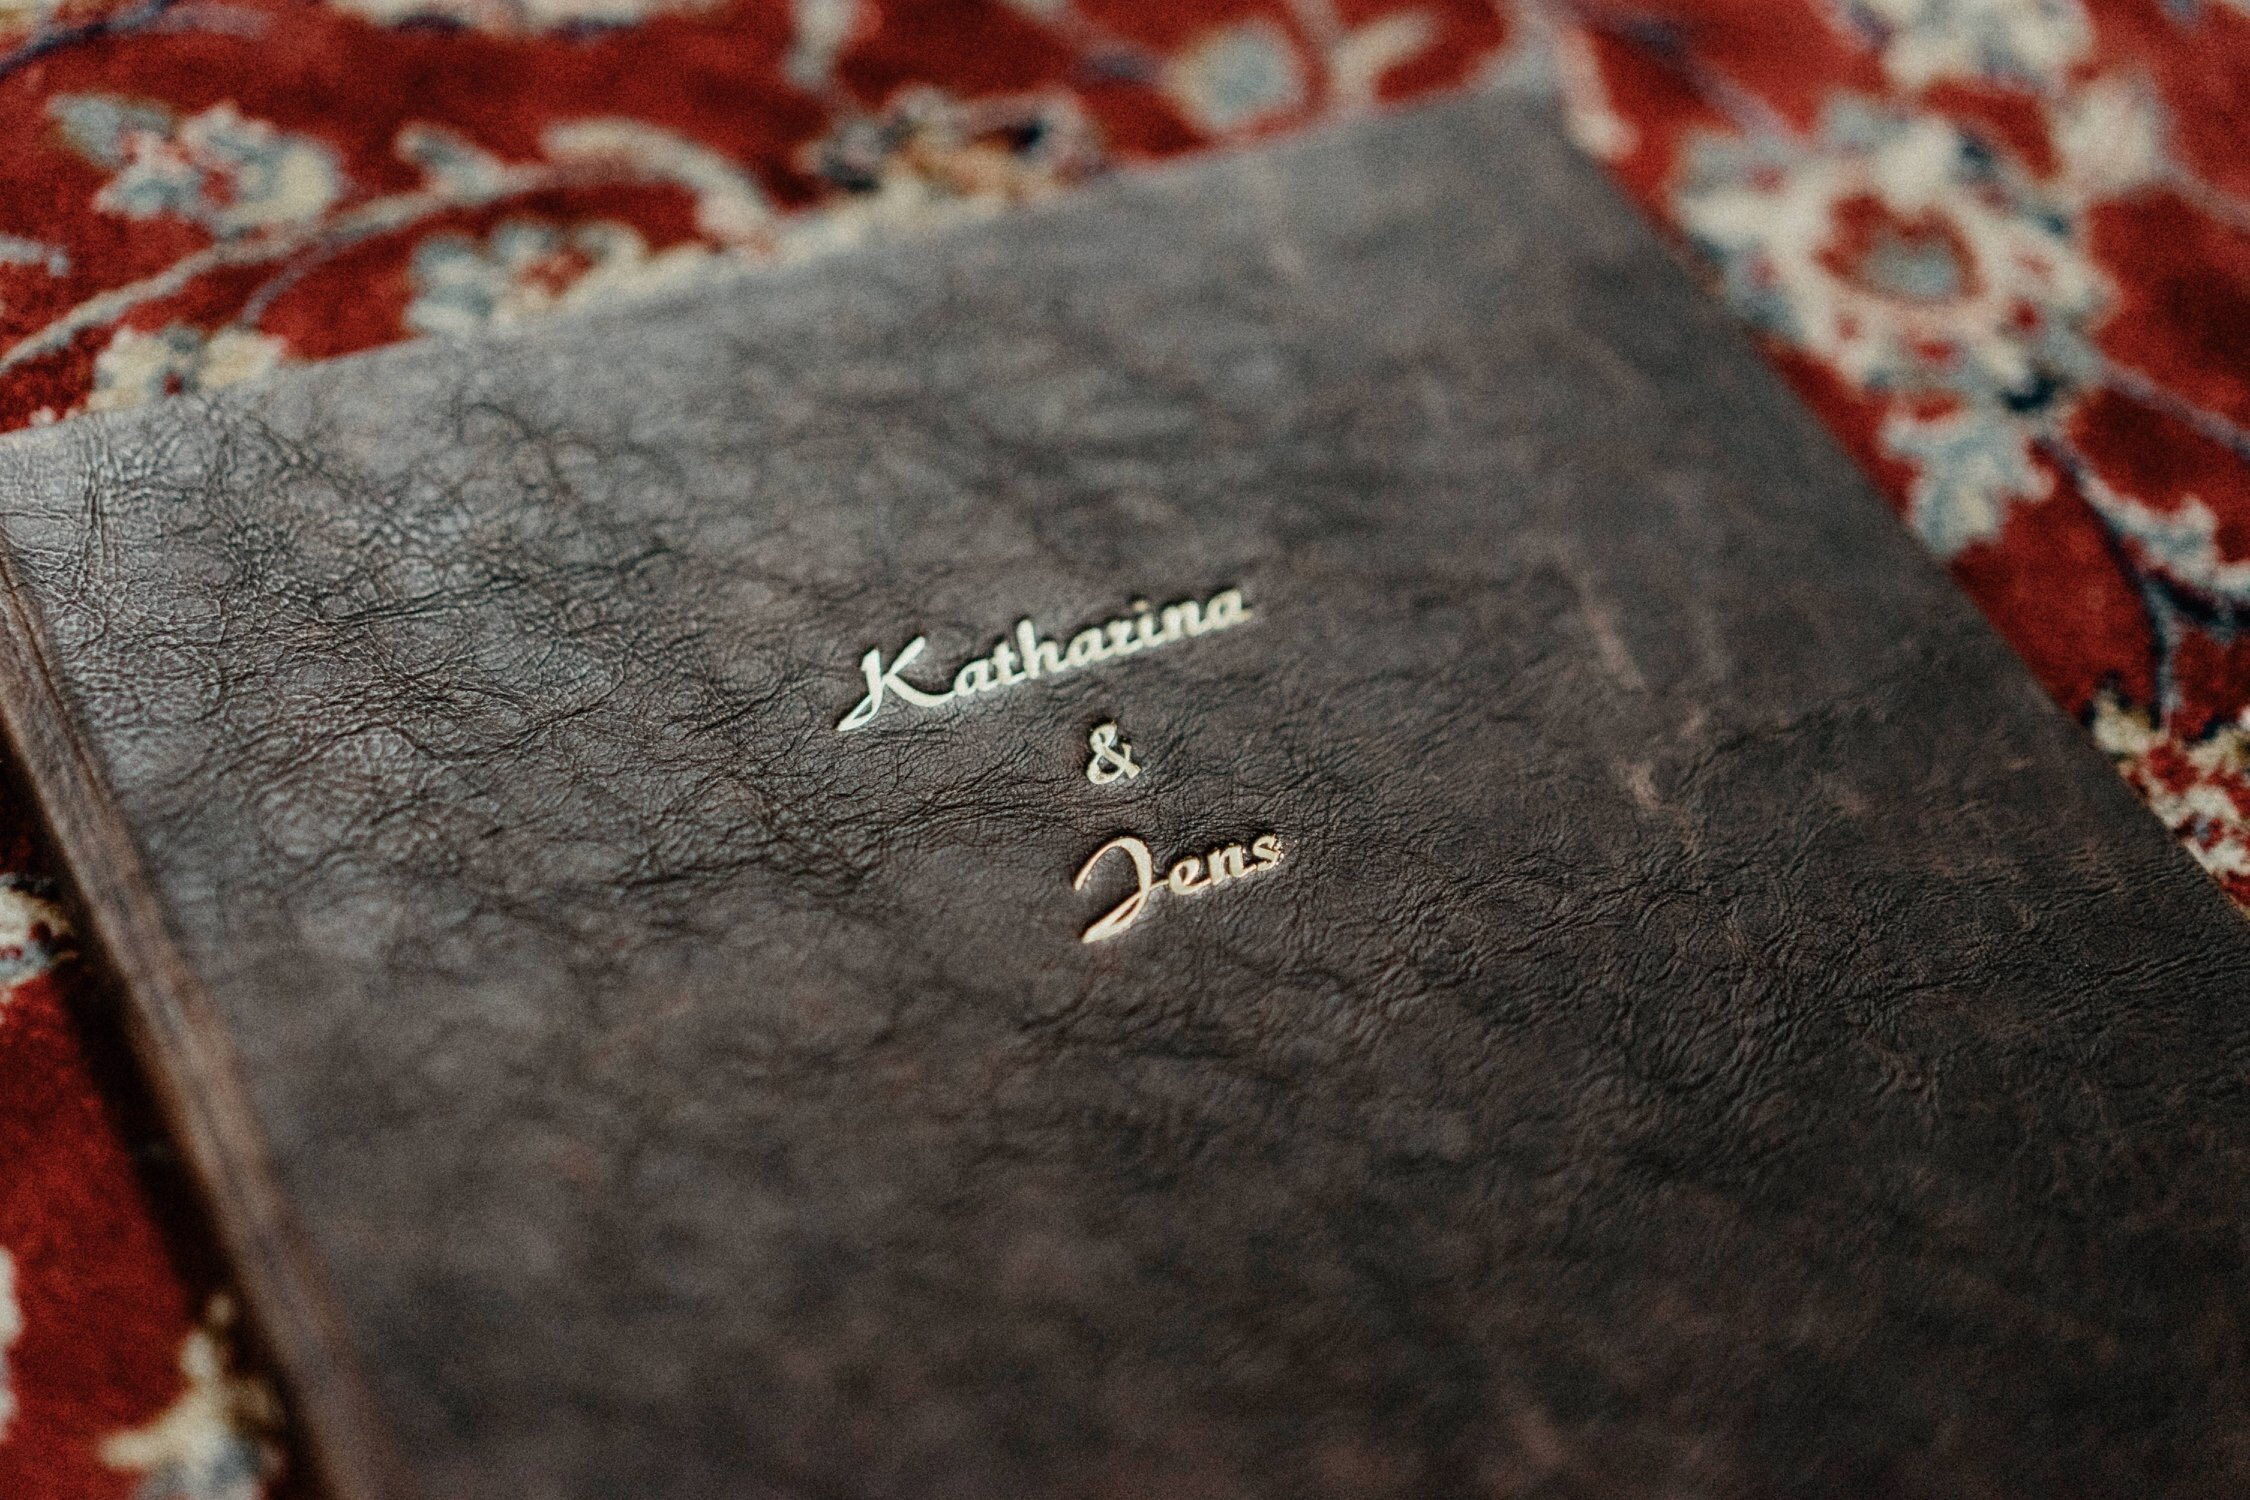 engraved names -